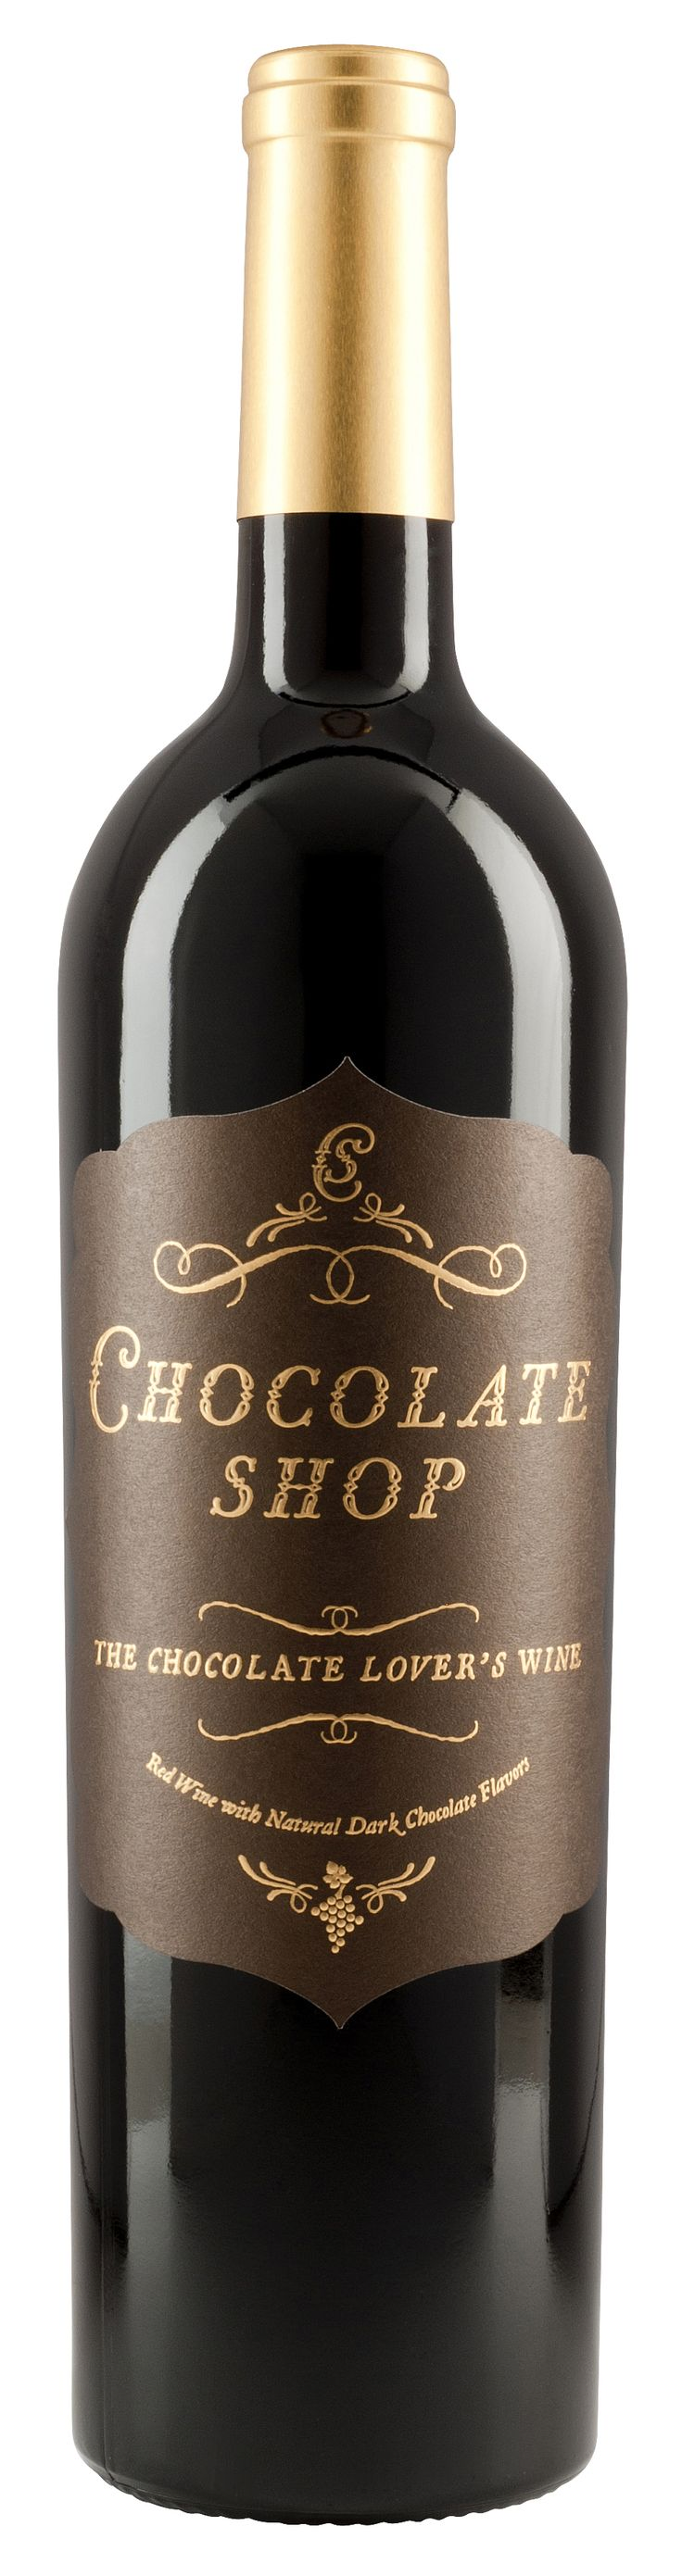 I have to try this.... smells and tastes like dark chocolate but it is red wine!!! Yes. A woman's nightmare and heaven all in one bottle.  Wow!!!!!